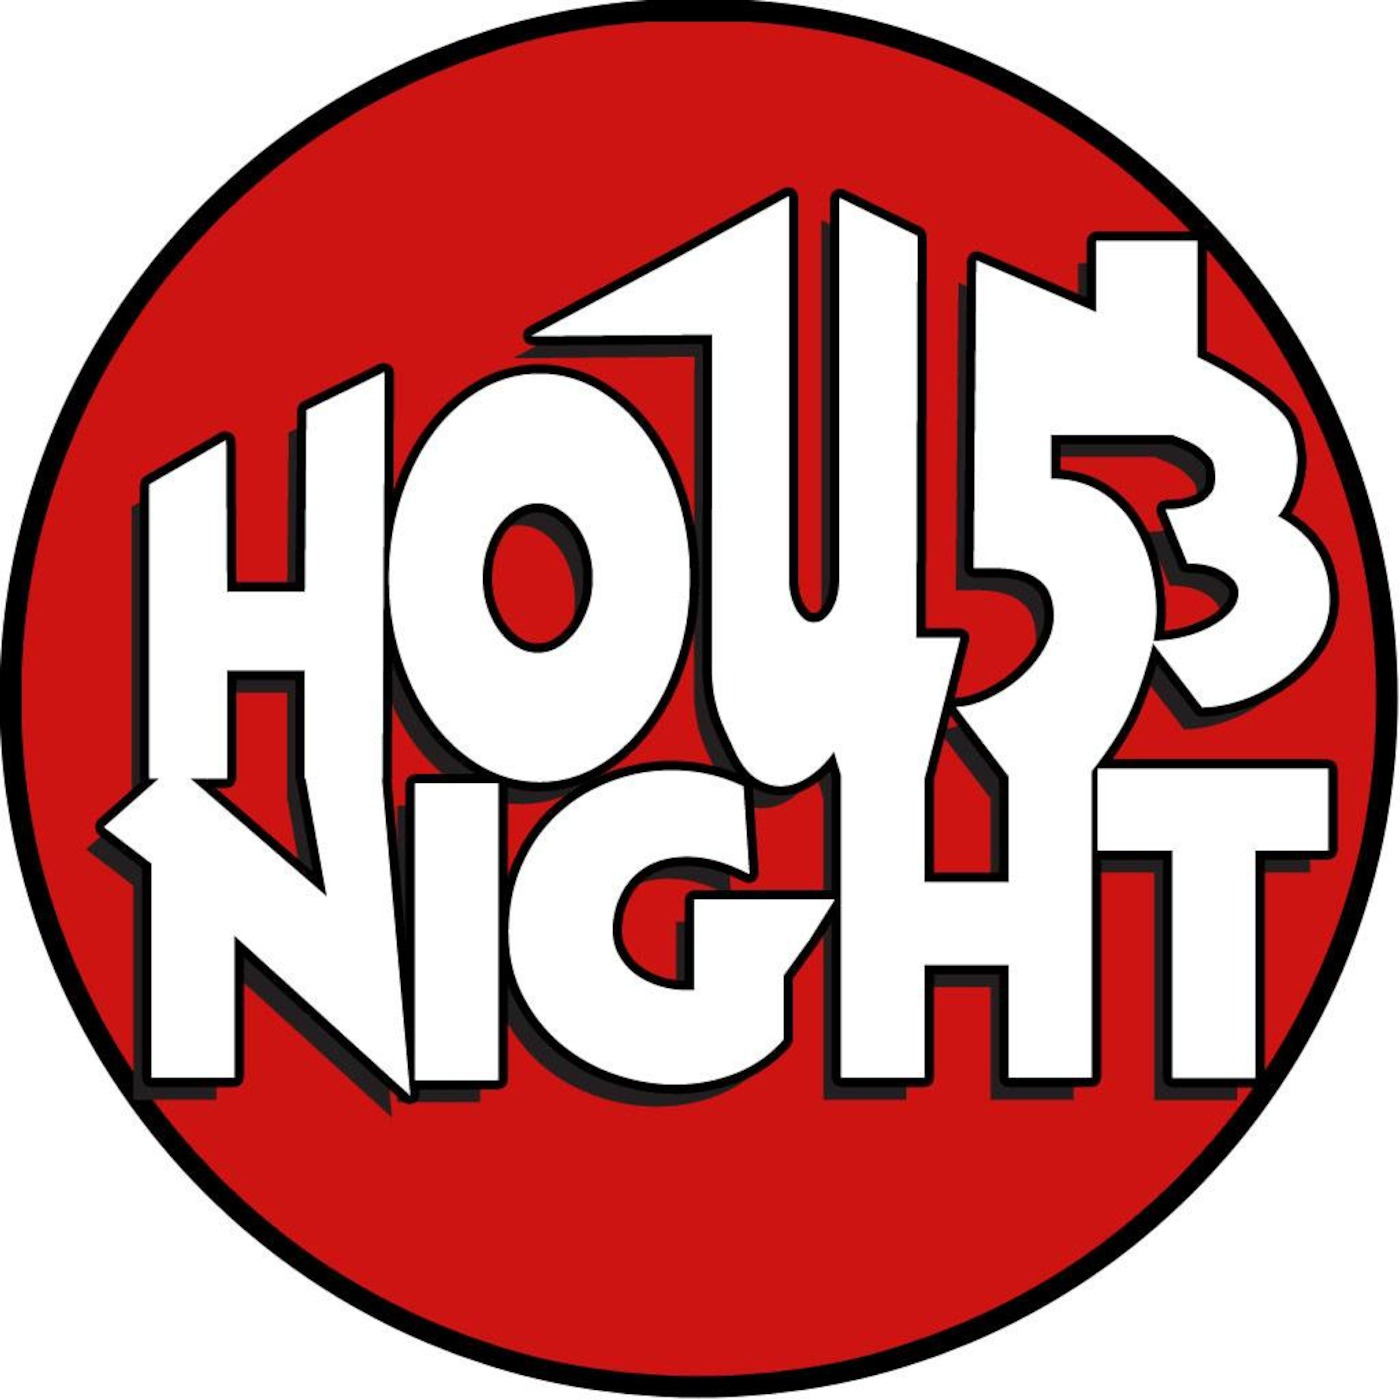 HOU53 NIGHT PODCAST